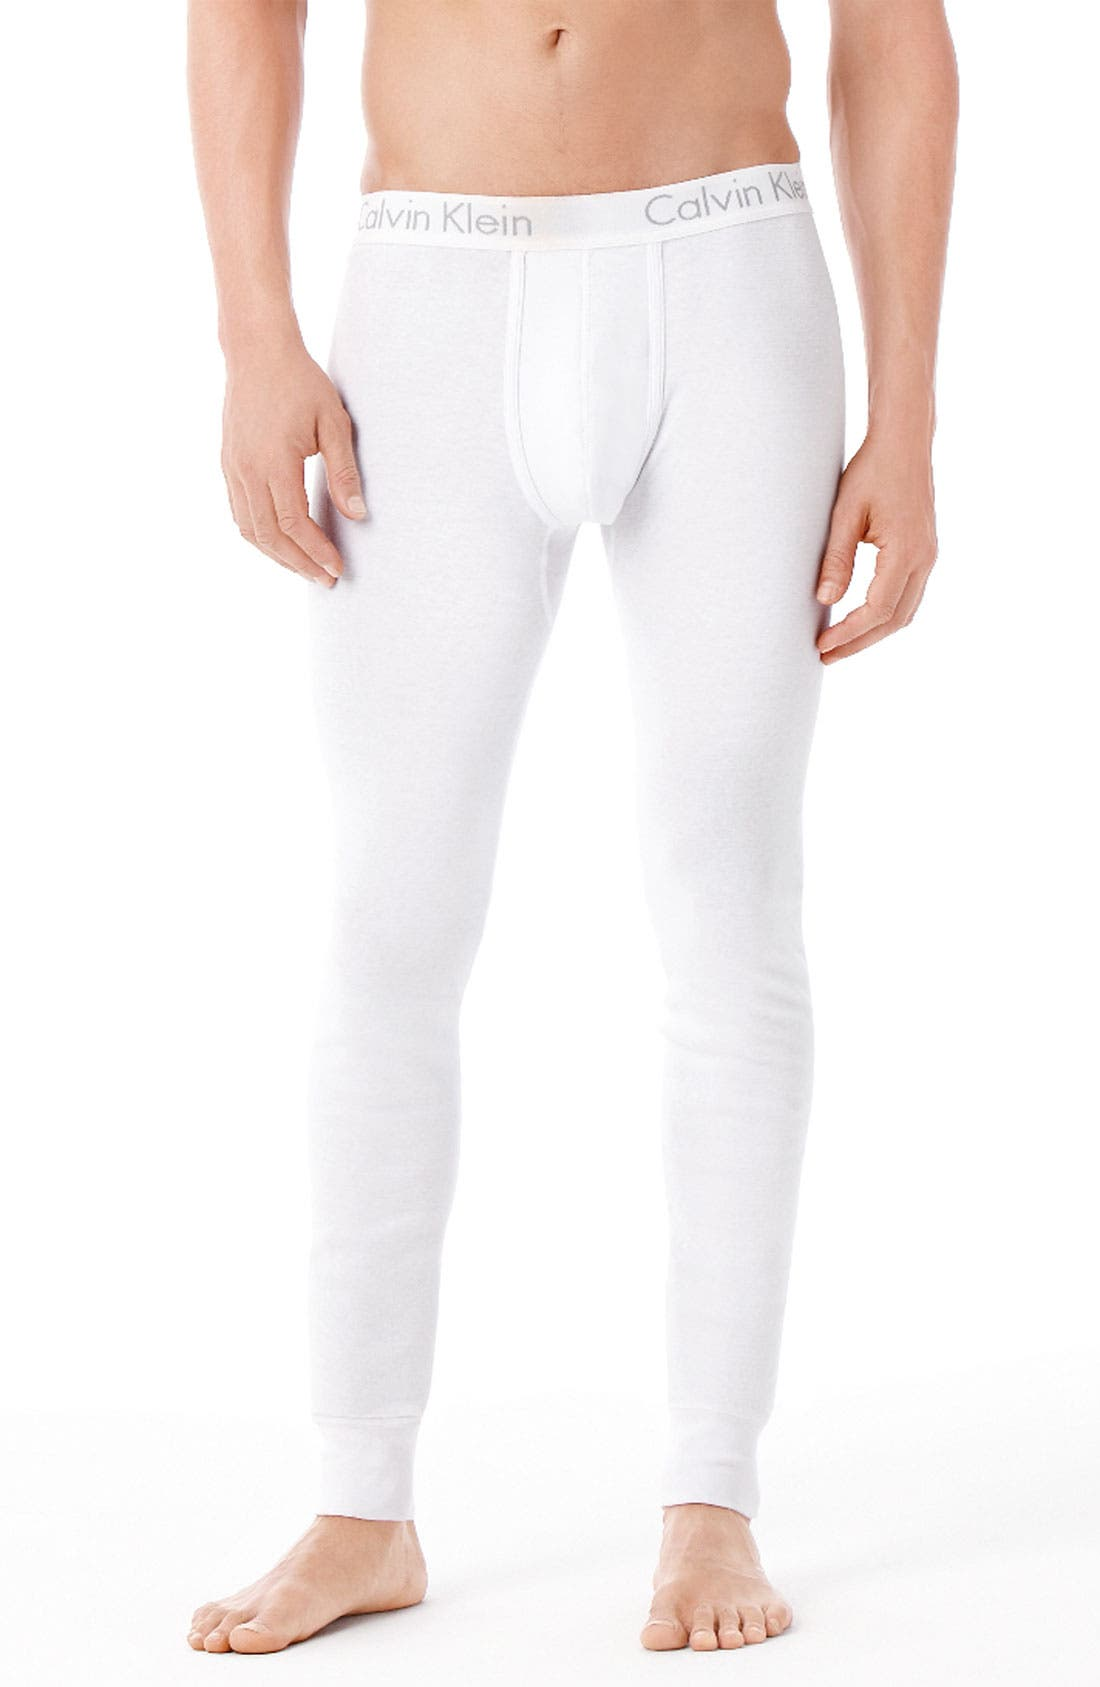 Alternate Image 1 Selected - Calvin Klein 'U1706' Cotton Long Underwear